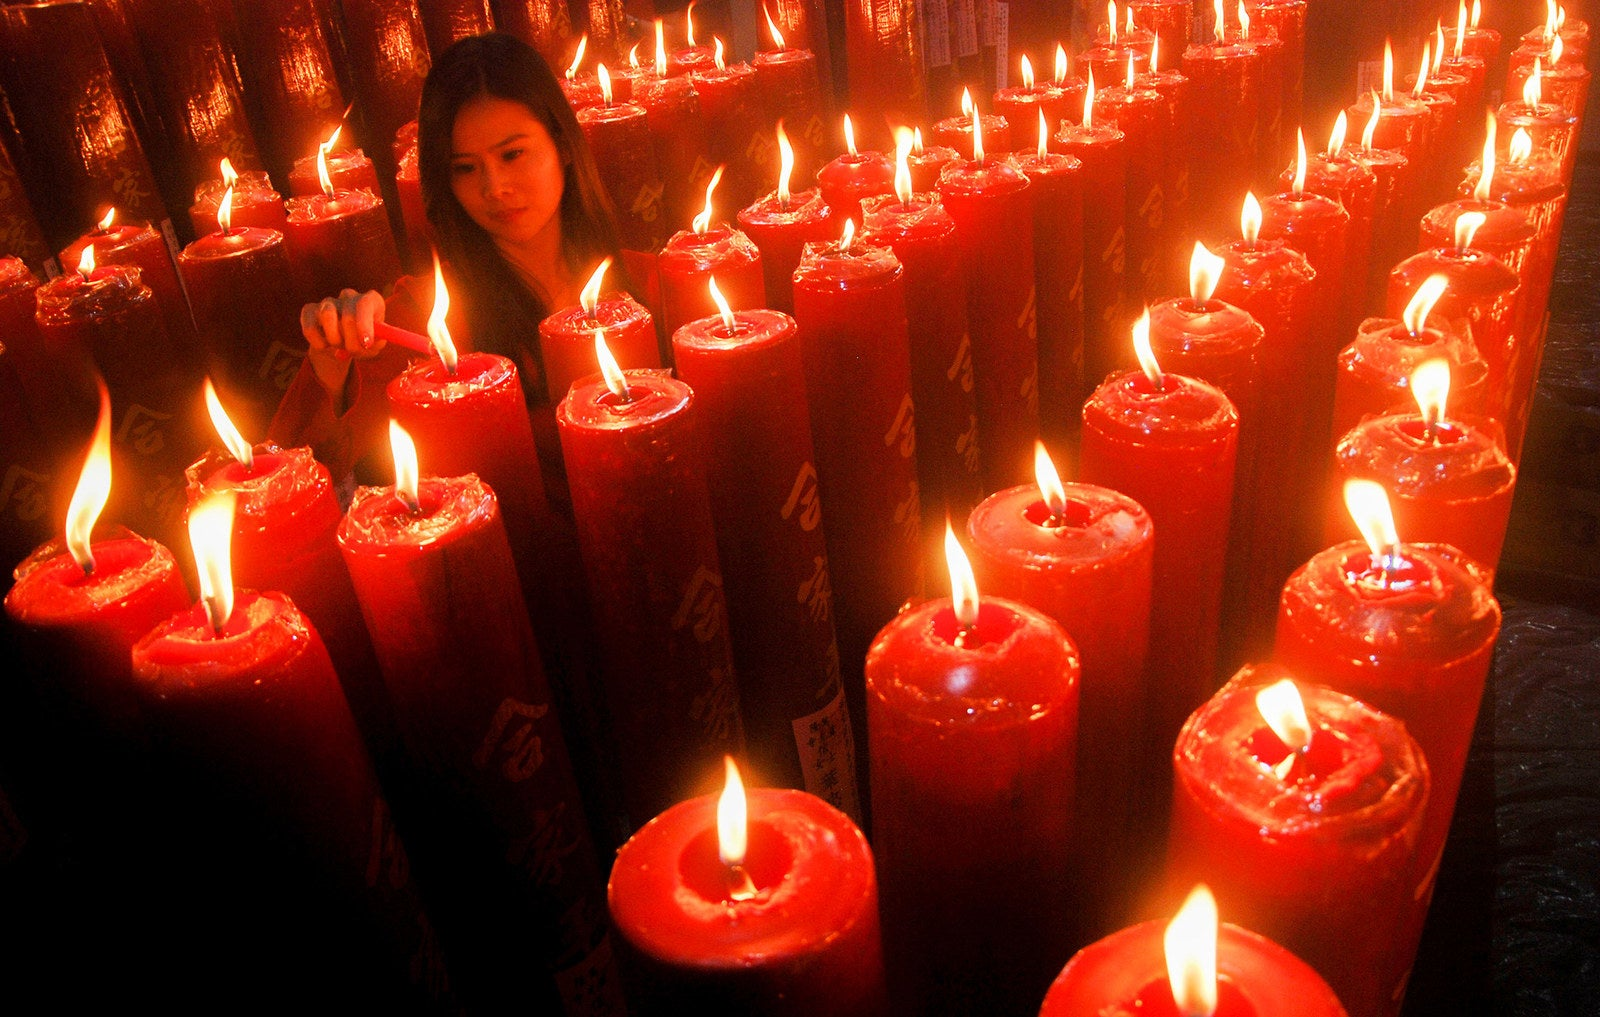 A woman lights a candle at a Chinese temple to mark the Lunar New Year in Bandung, West Java province, on Feb. 16.